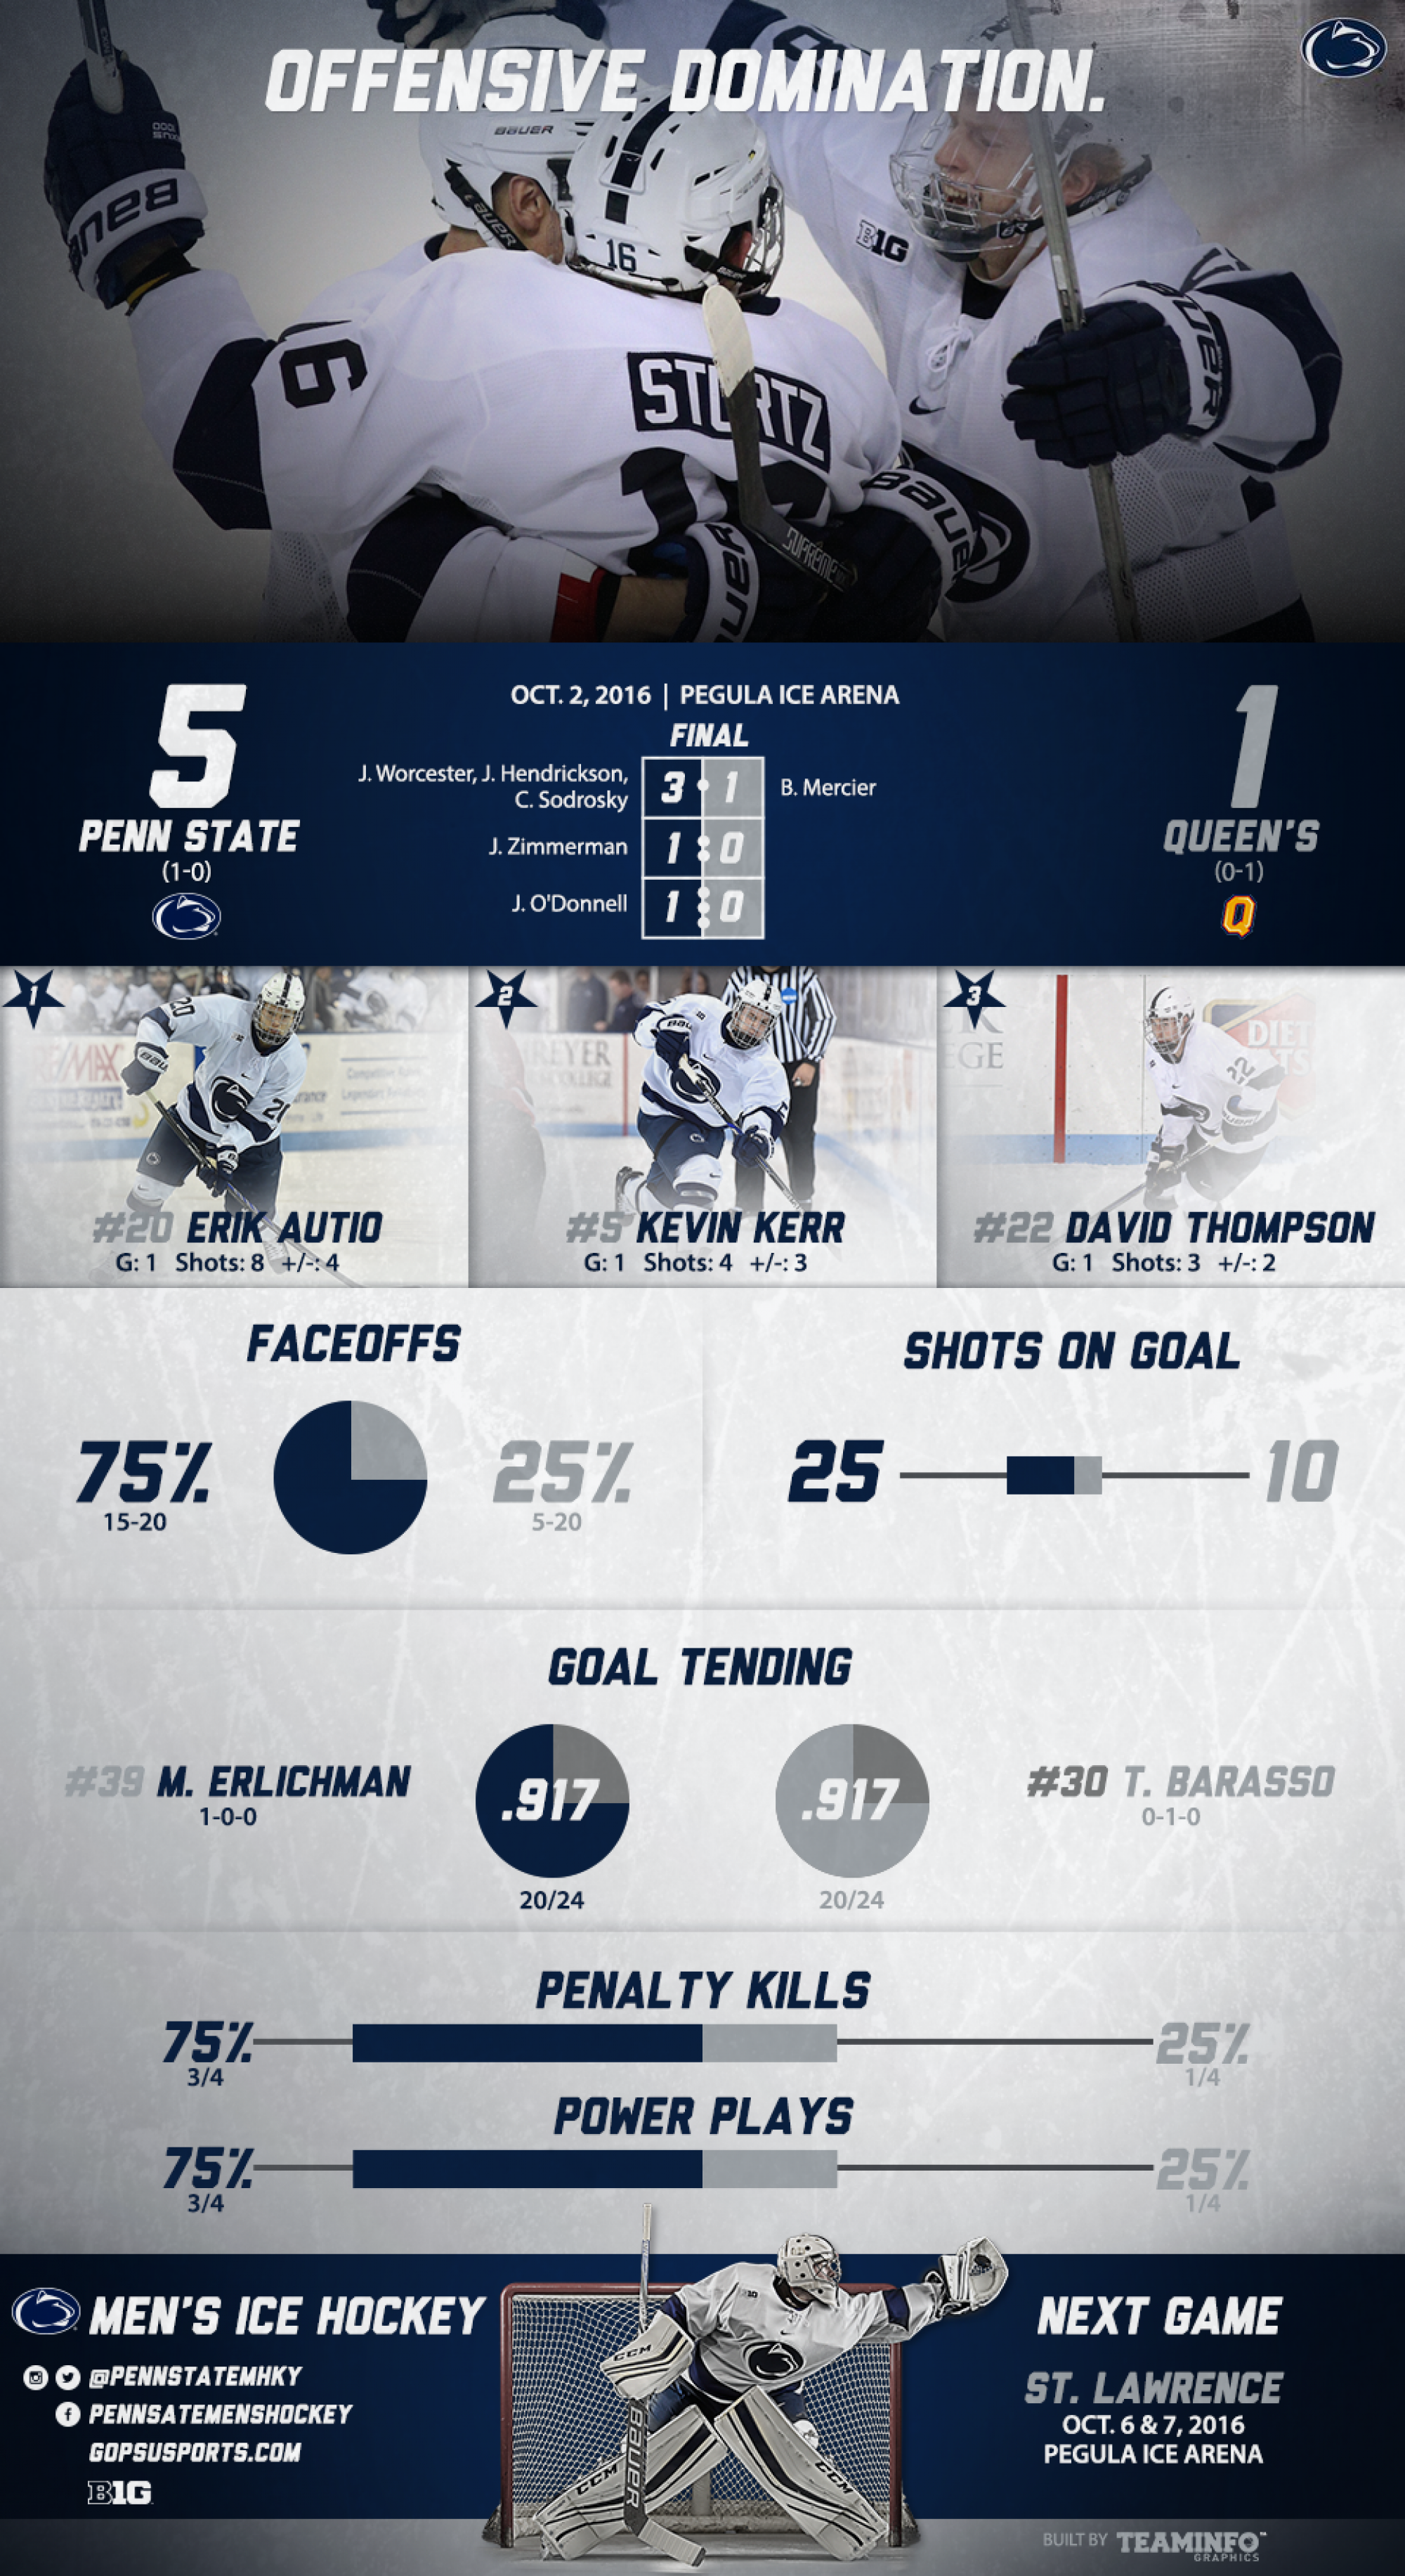 penn_state_m_hockey_postgame_01_sample